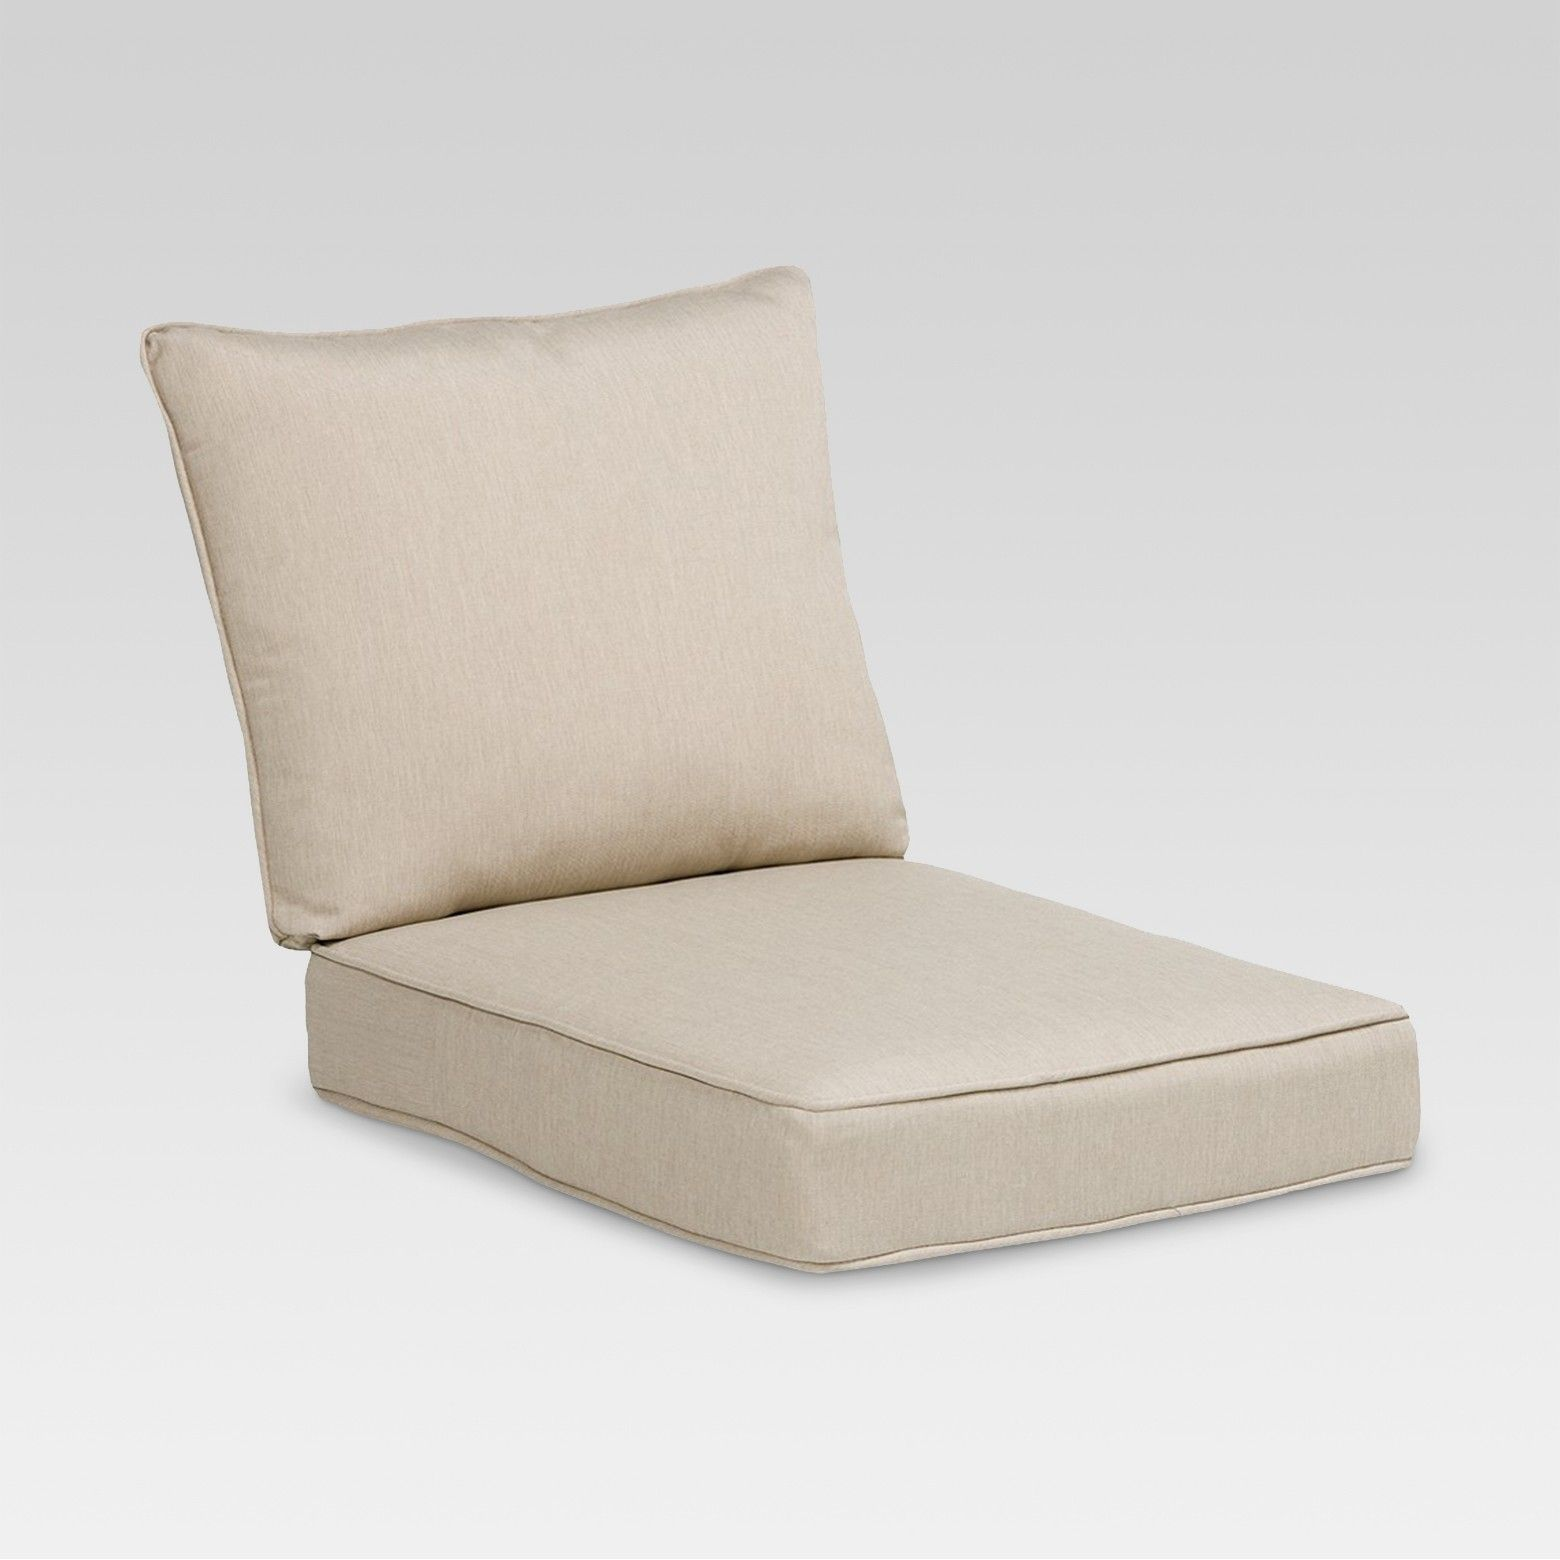 Download Wallpaper Replacement Cushions For Outdoor Chair And Ottoman